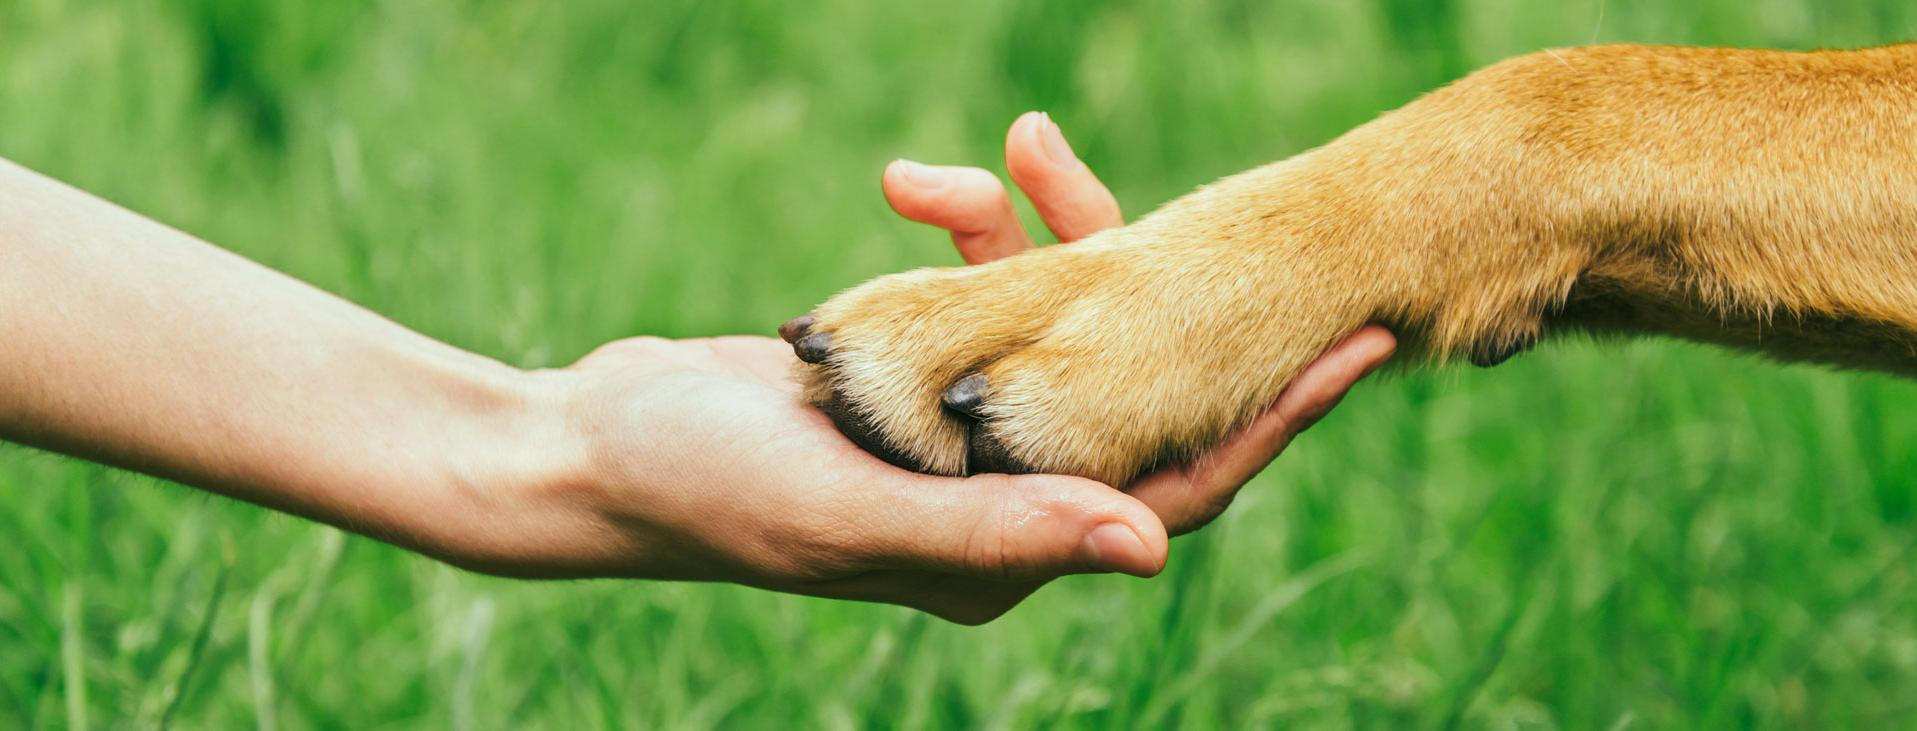 Human hand holding dog paw with grass behind them